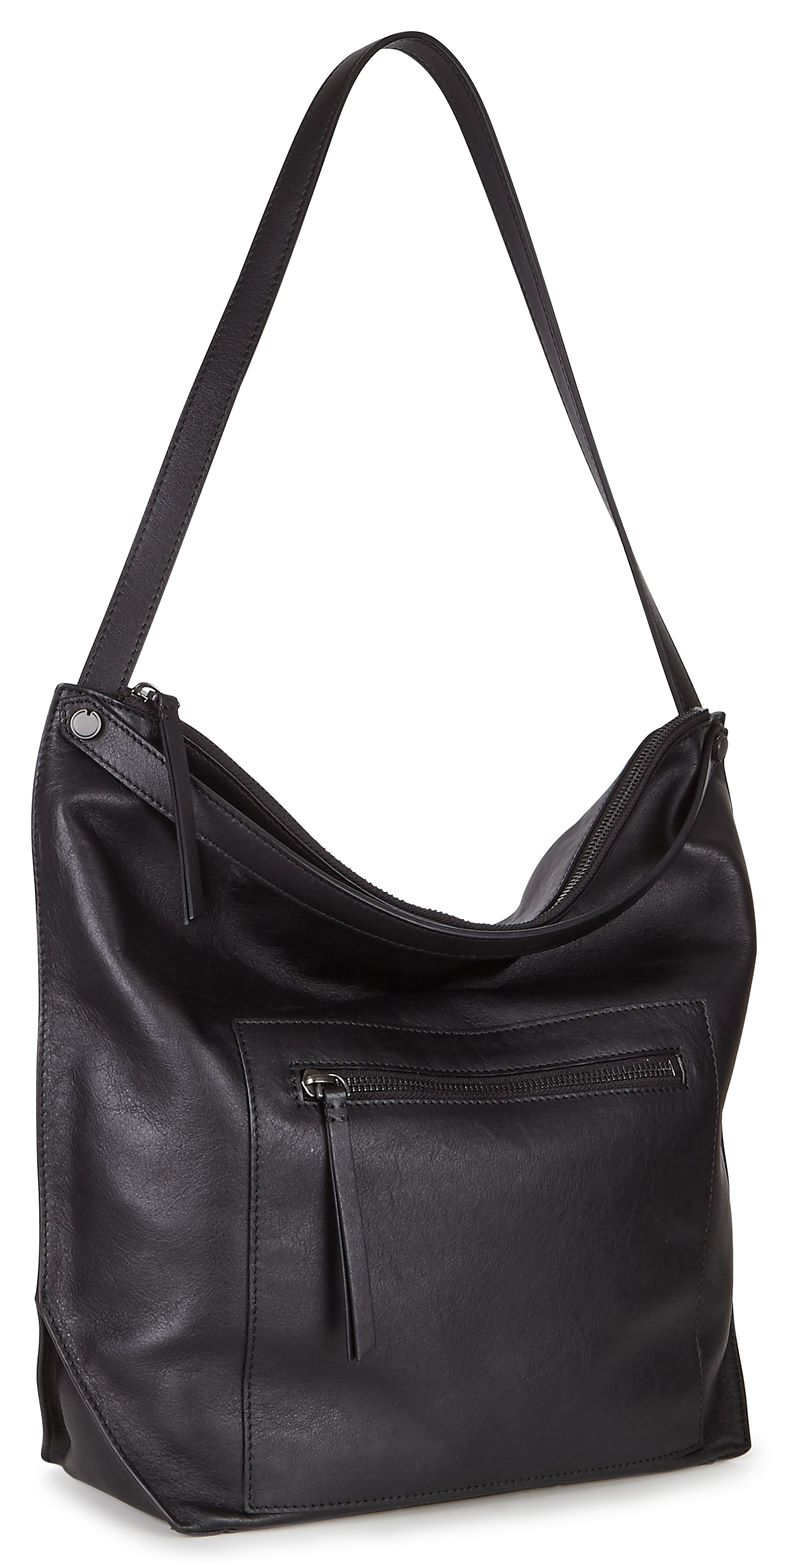 Sculptured Hobo Bag (黑色)